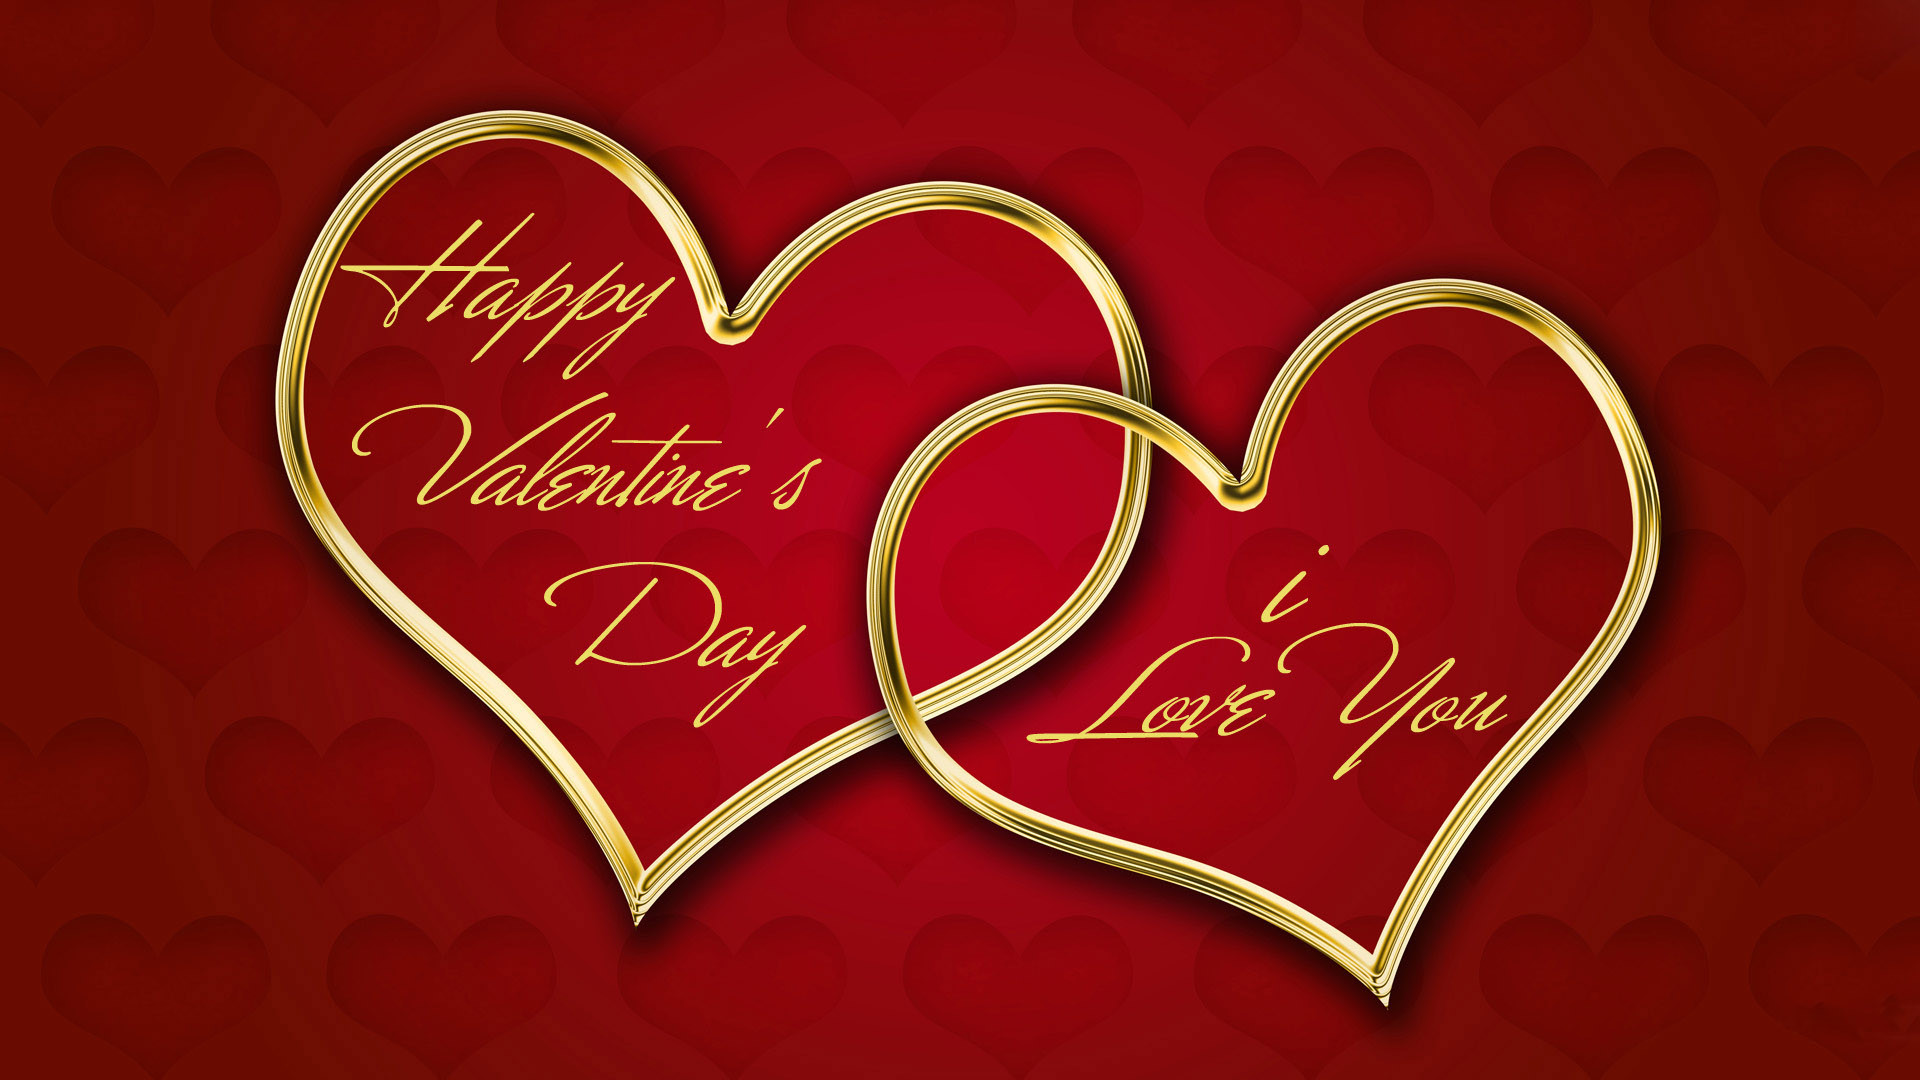 Happy Valentines Day Red Wallpaper HD